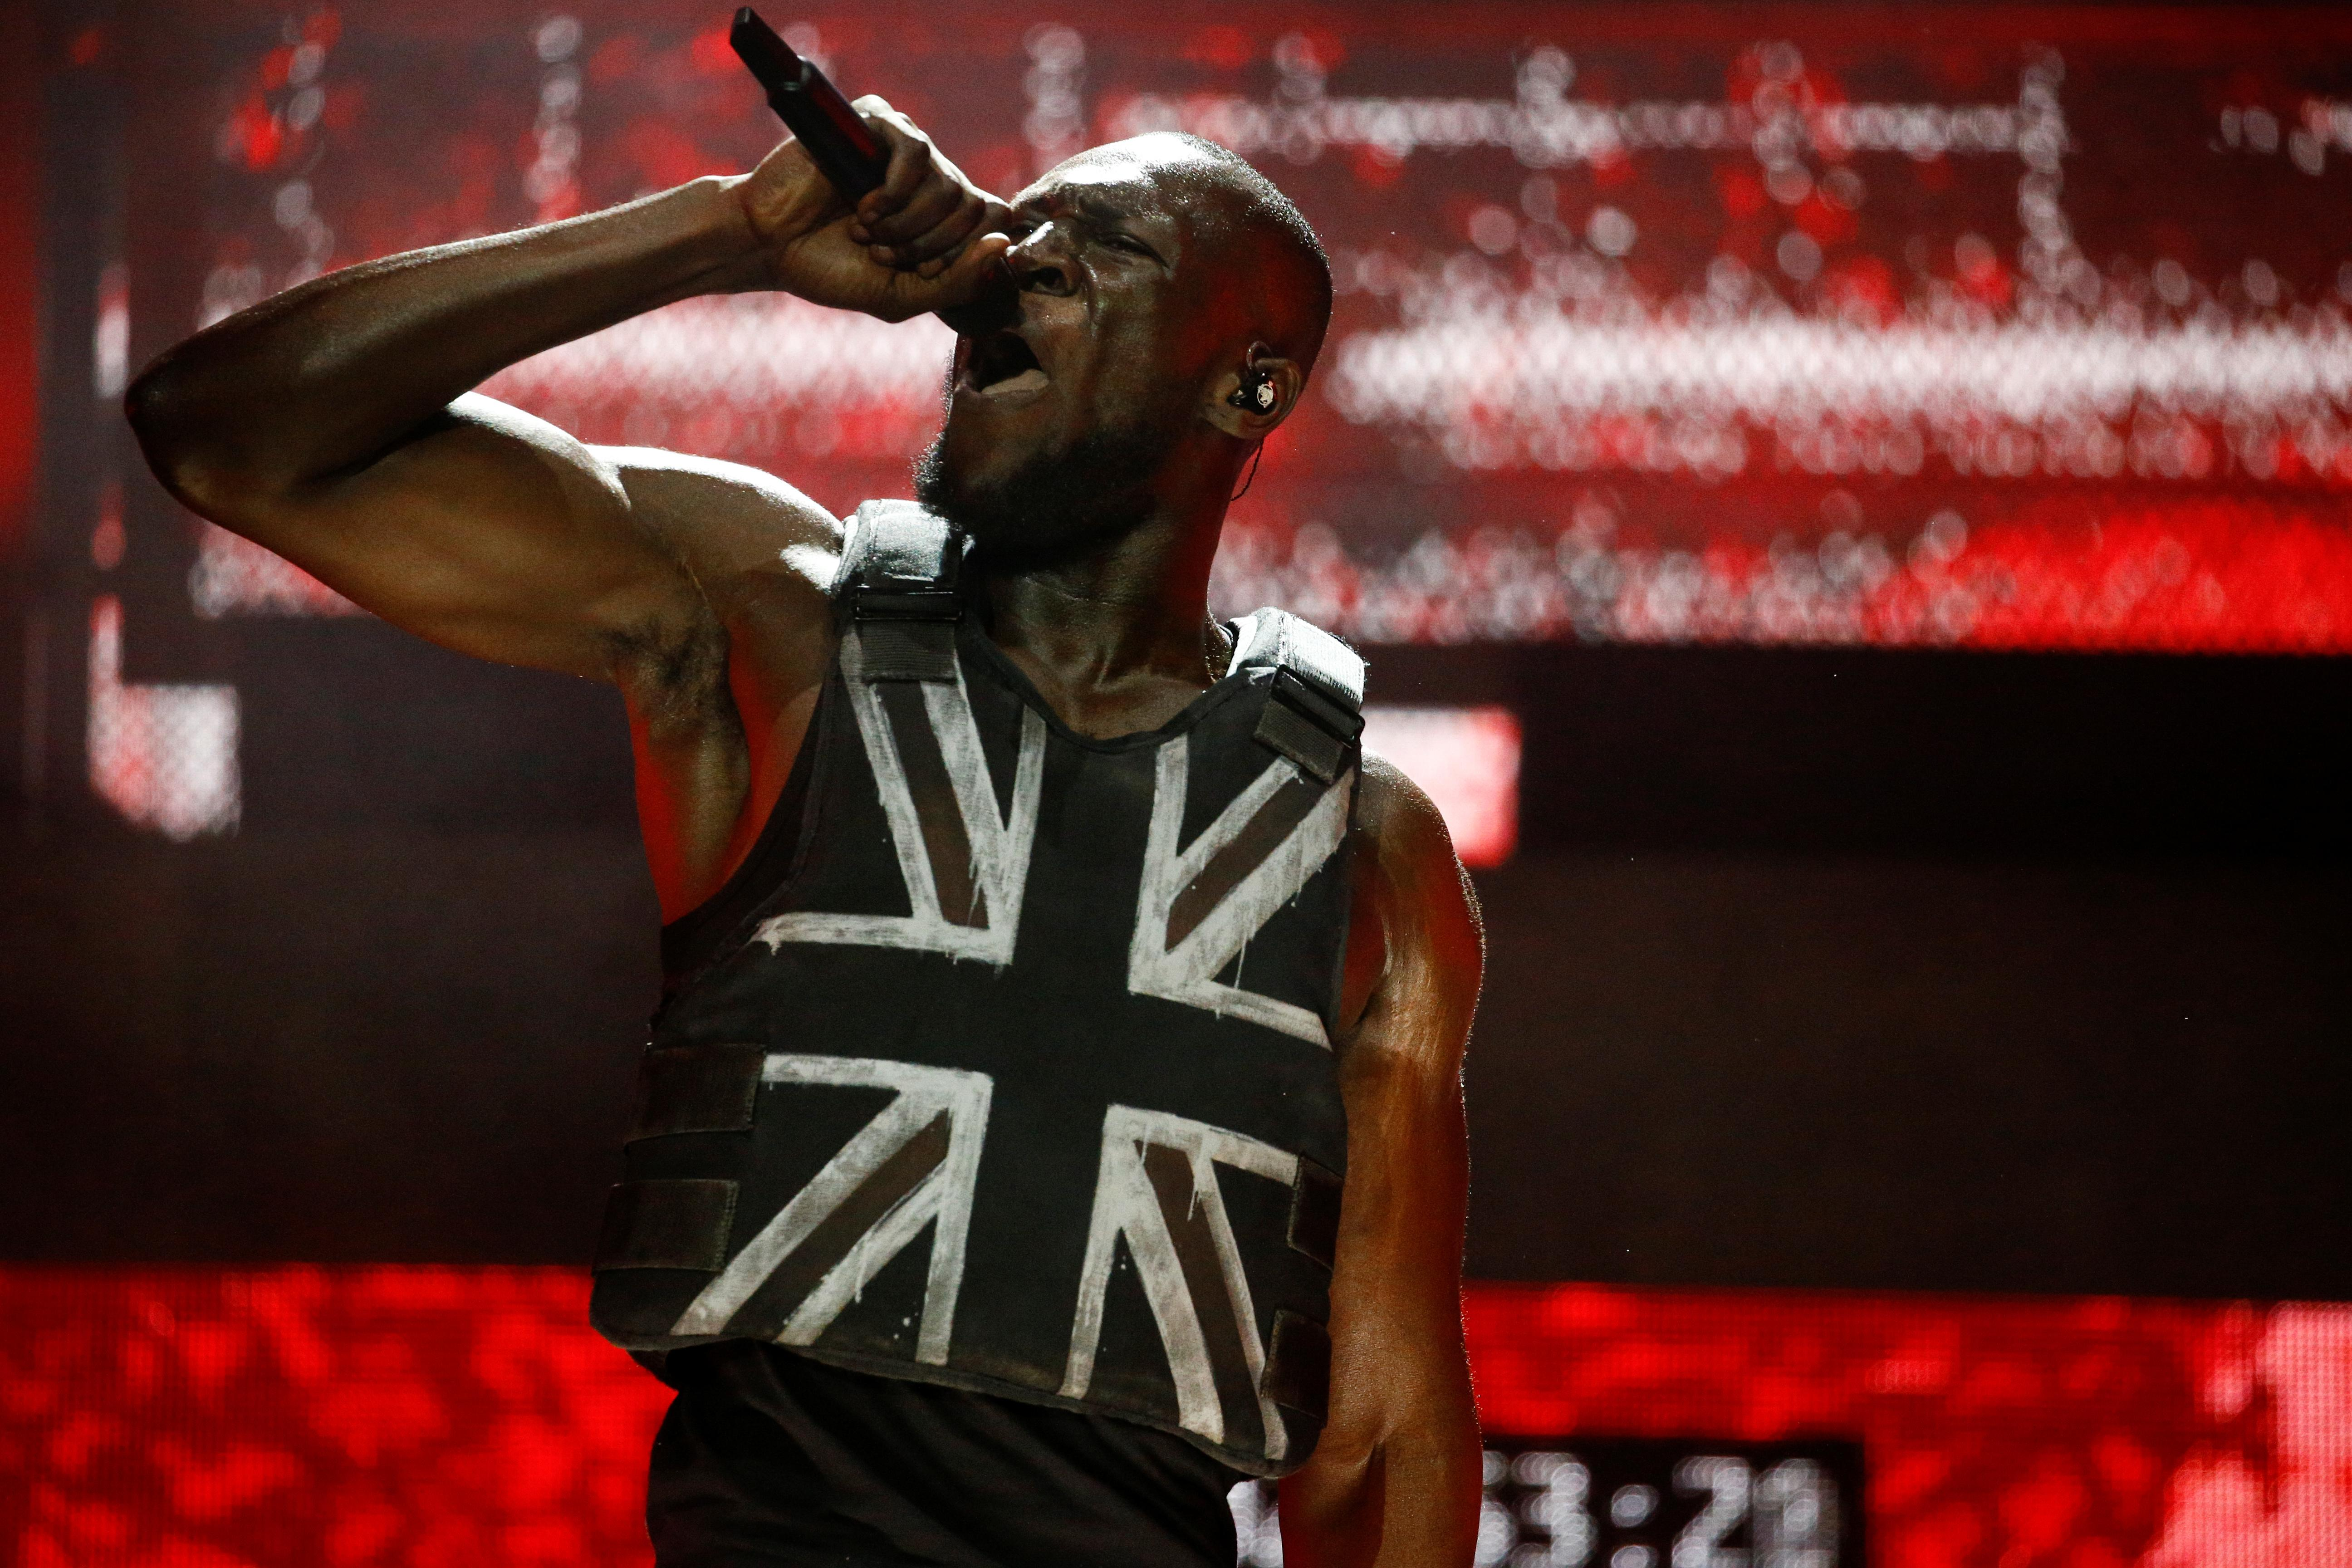 British rap star Stormzy brings world tour to Zouk Singapore, tickets sold out